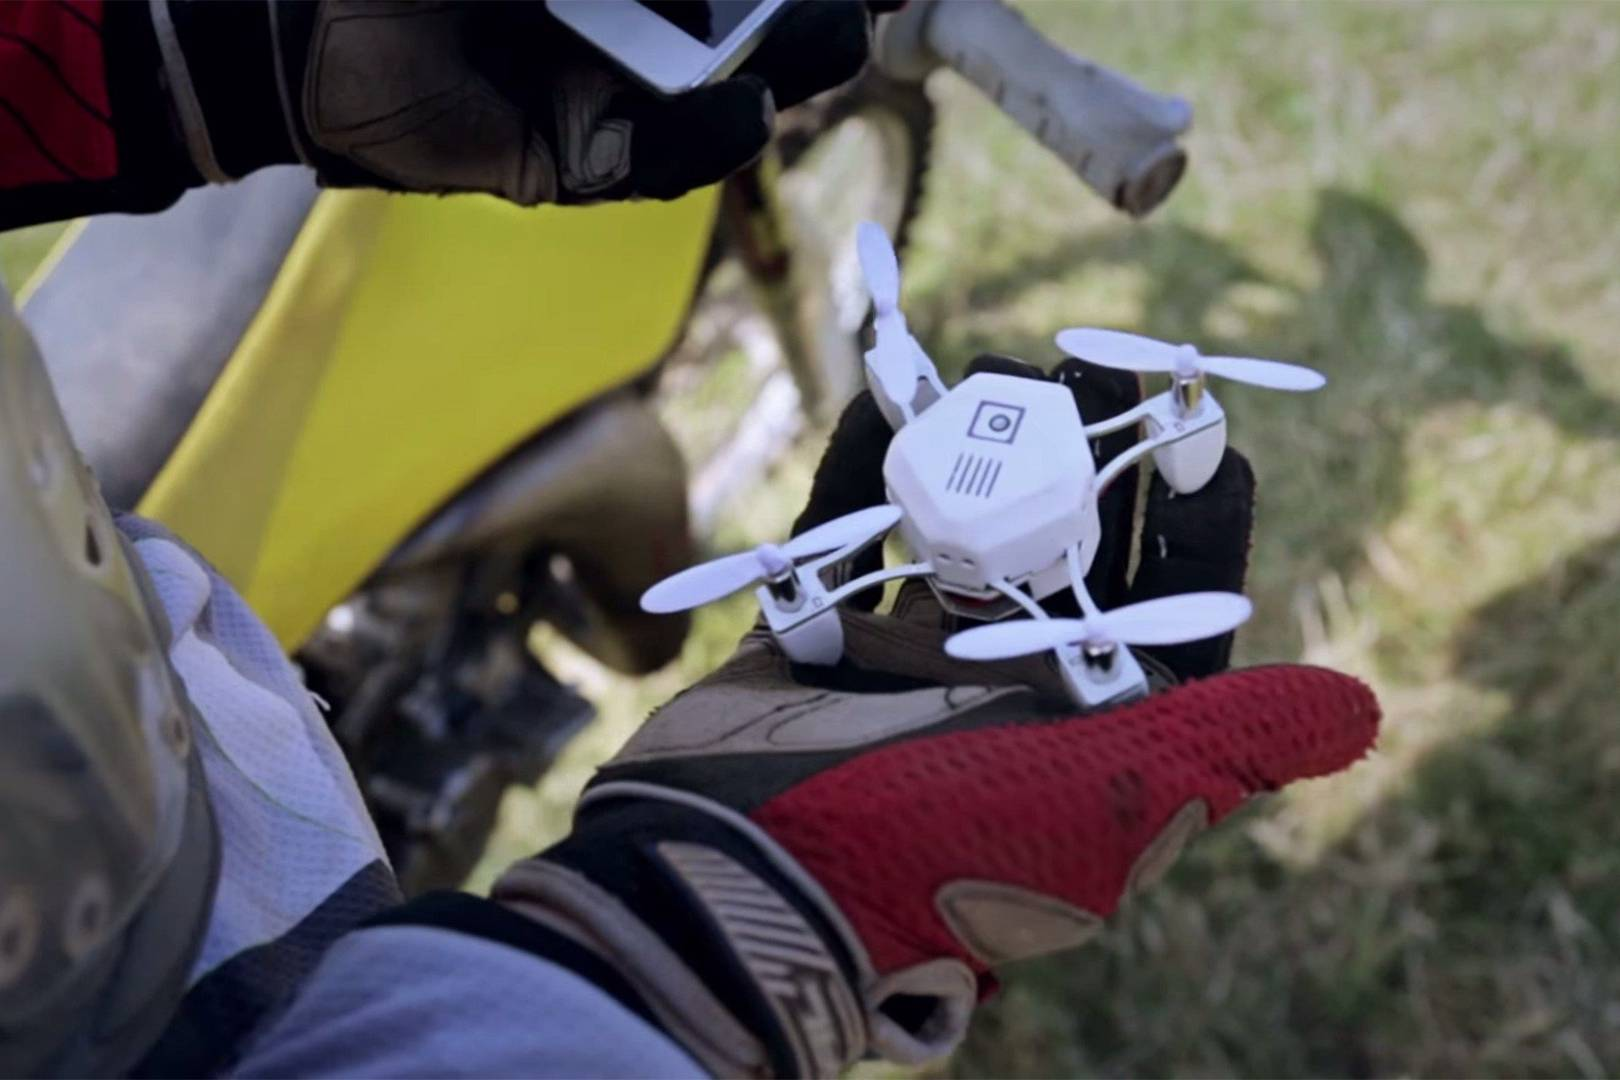 Zano Drones Torquing Group Investigated By Trading Standards